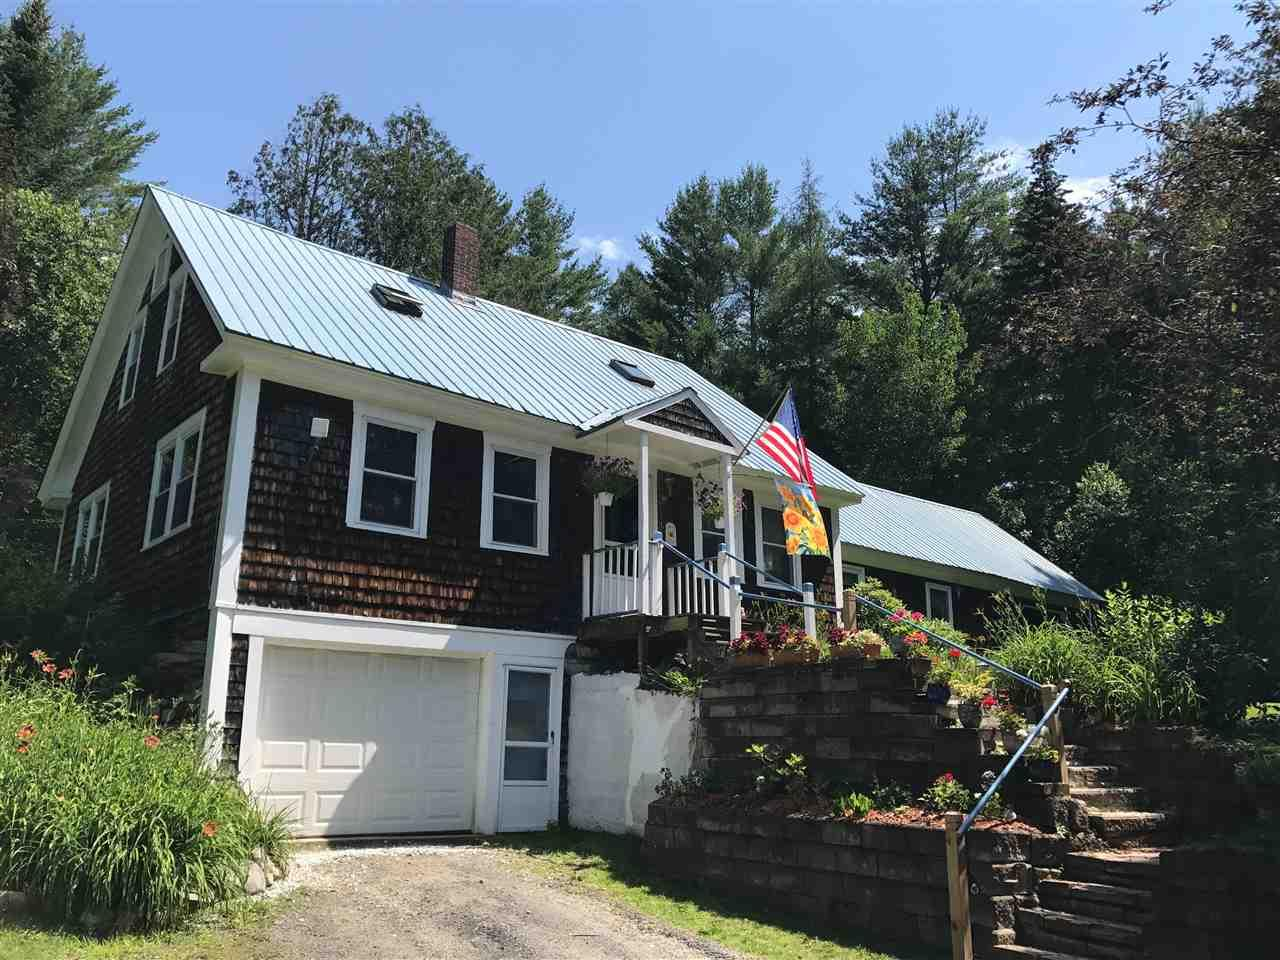 71 Union Rd Dalton Nh Mls 4650620 Better Homes And Gardens Real Estate